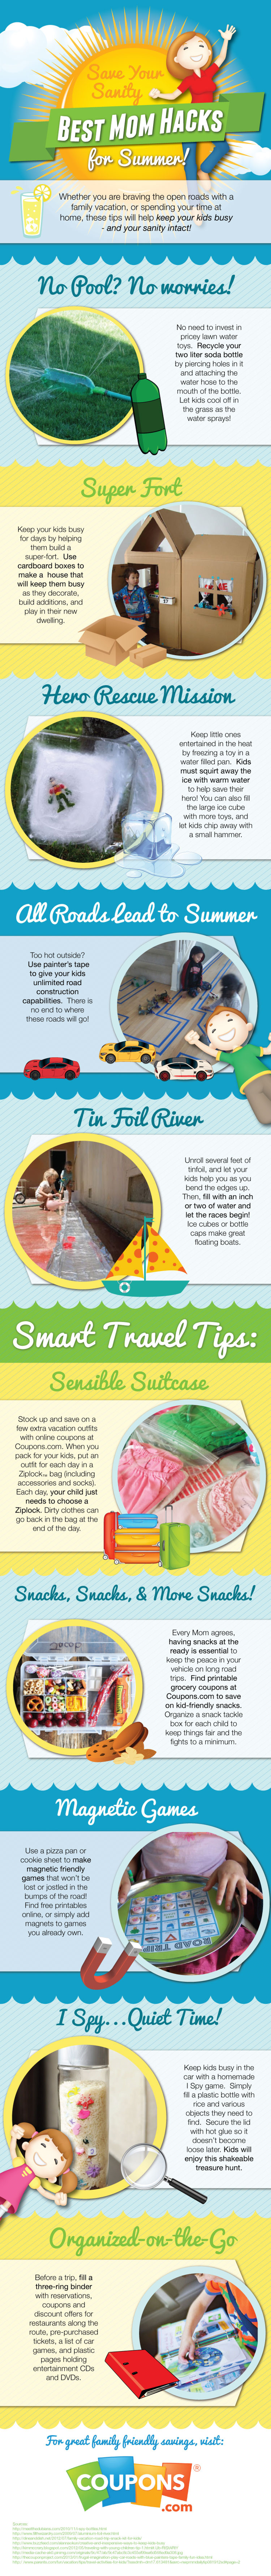 Best Mom Hacks for Summer Infographic